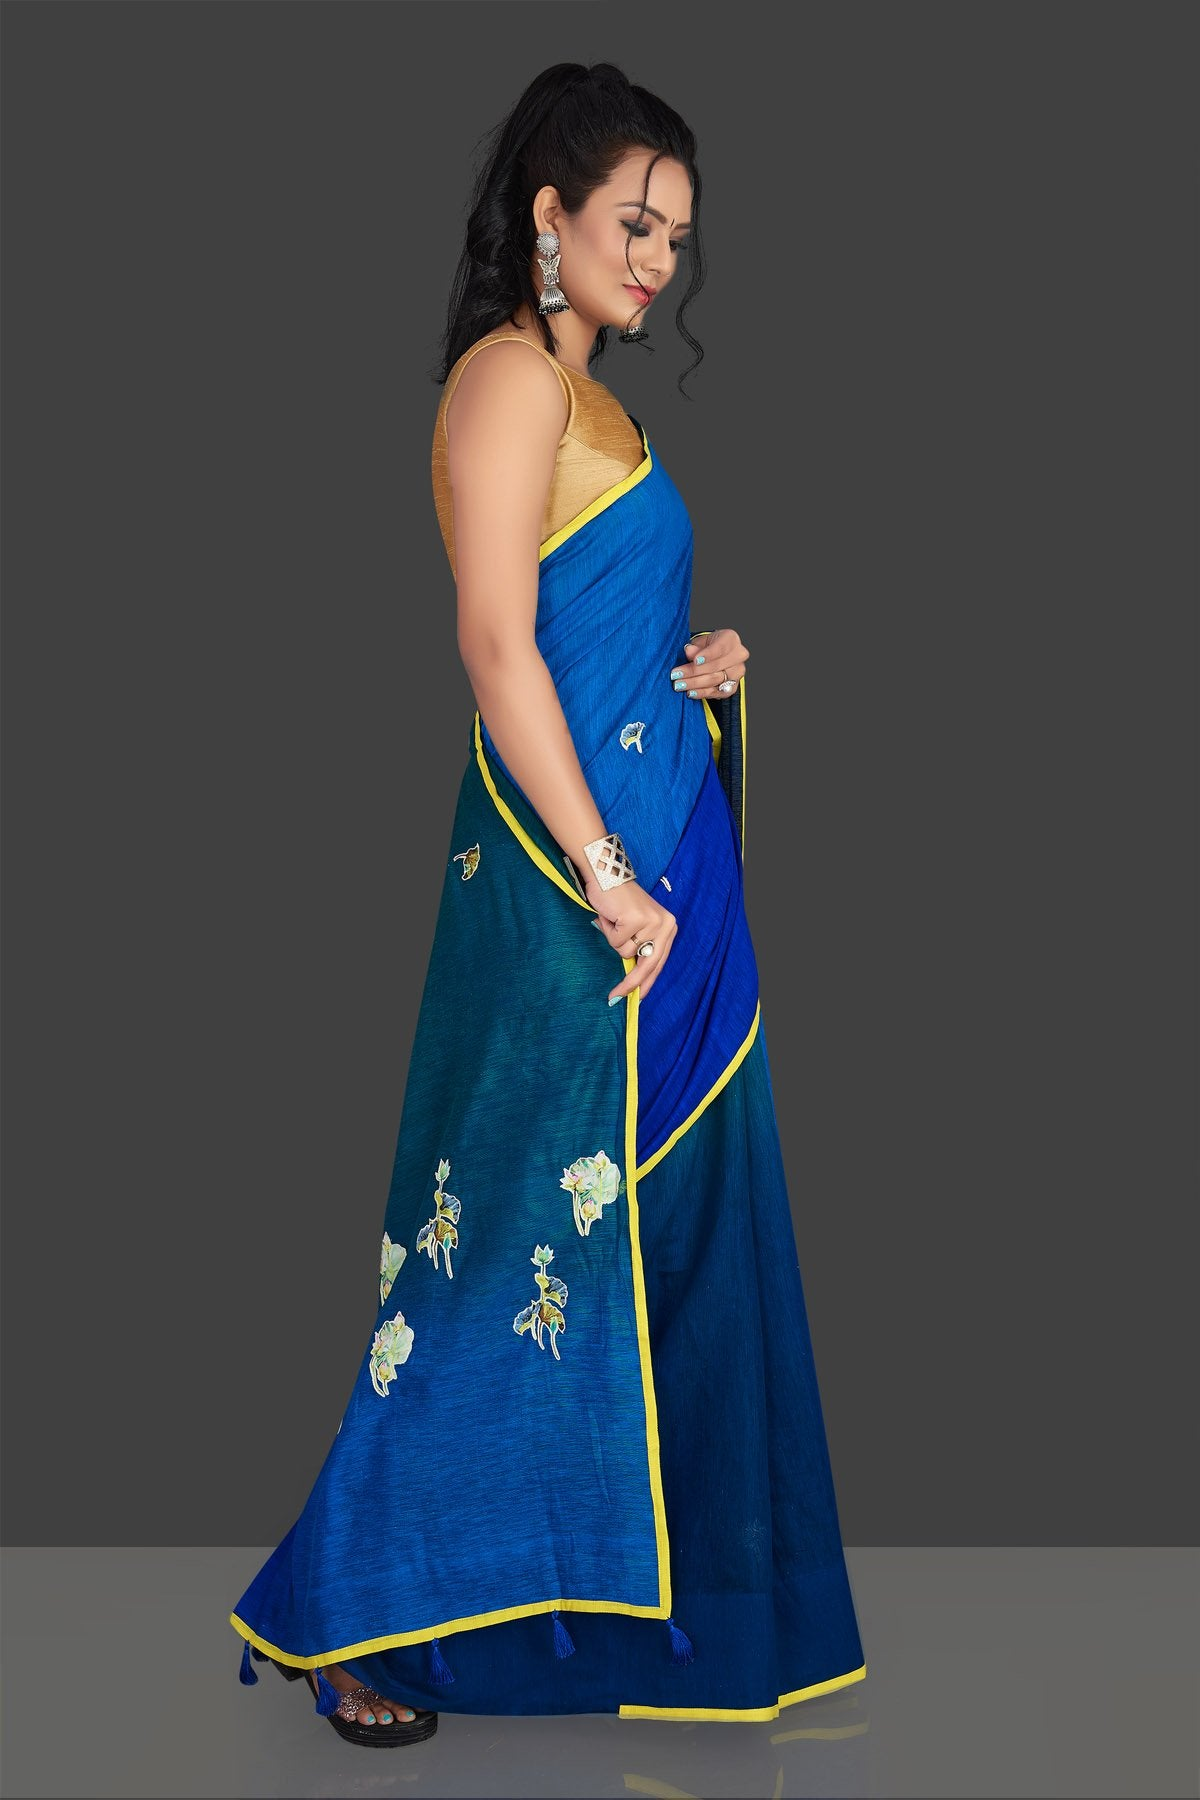 Shop blue and green applique work linen saree online in USA with white floral saree blouse. Radiate elegance with designer sarees with blouse, linen sarees from Pure Elegance Indian fashion boutique in USA. We bring a especially curated collection of ethnic saris for Indian women in USA under one roof!-pallu